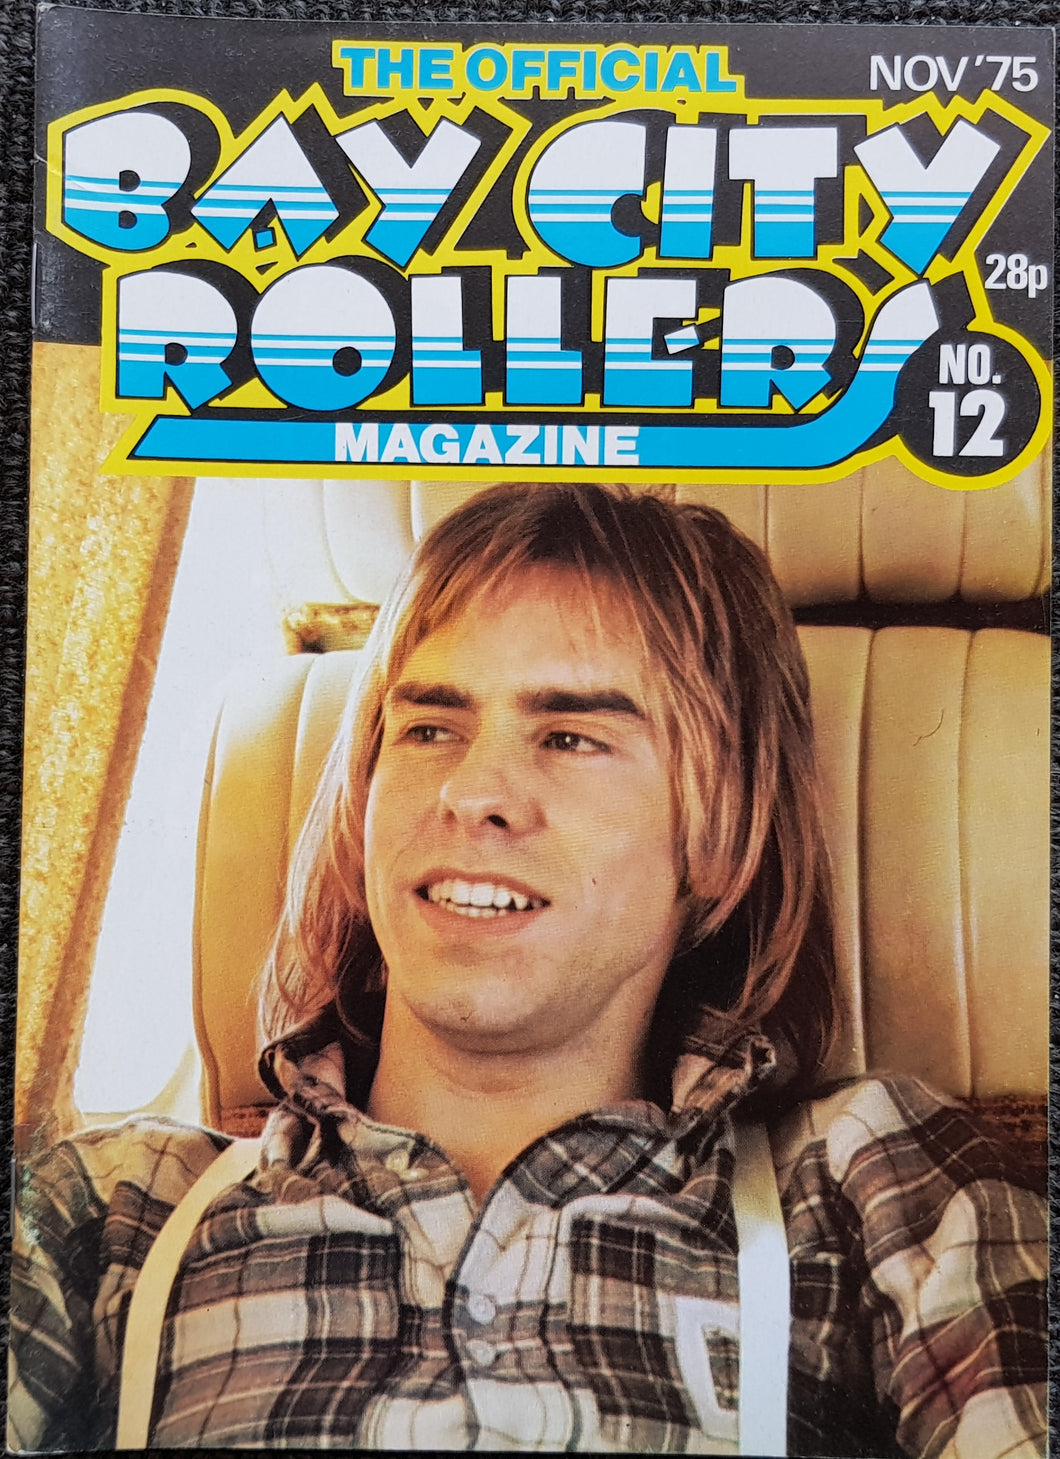 Bay City Rollers - The Official Bay City Rollers Magazine No.12